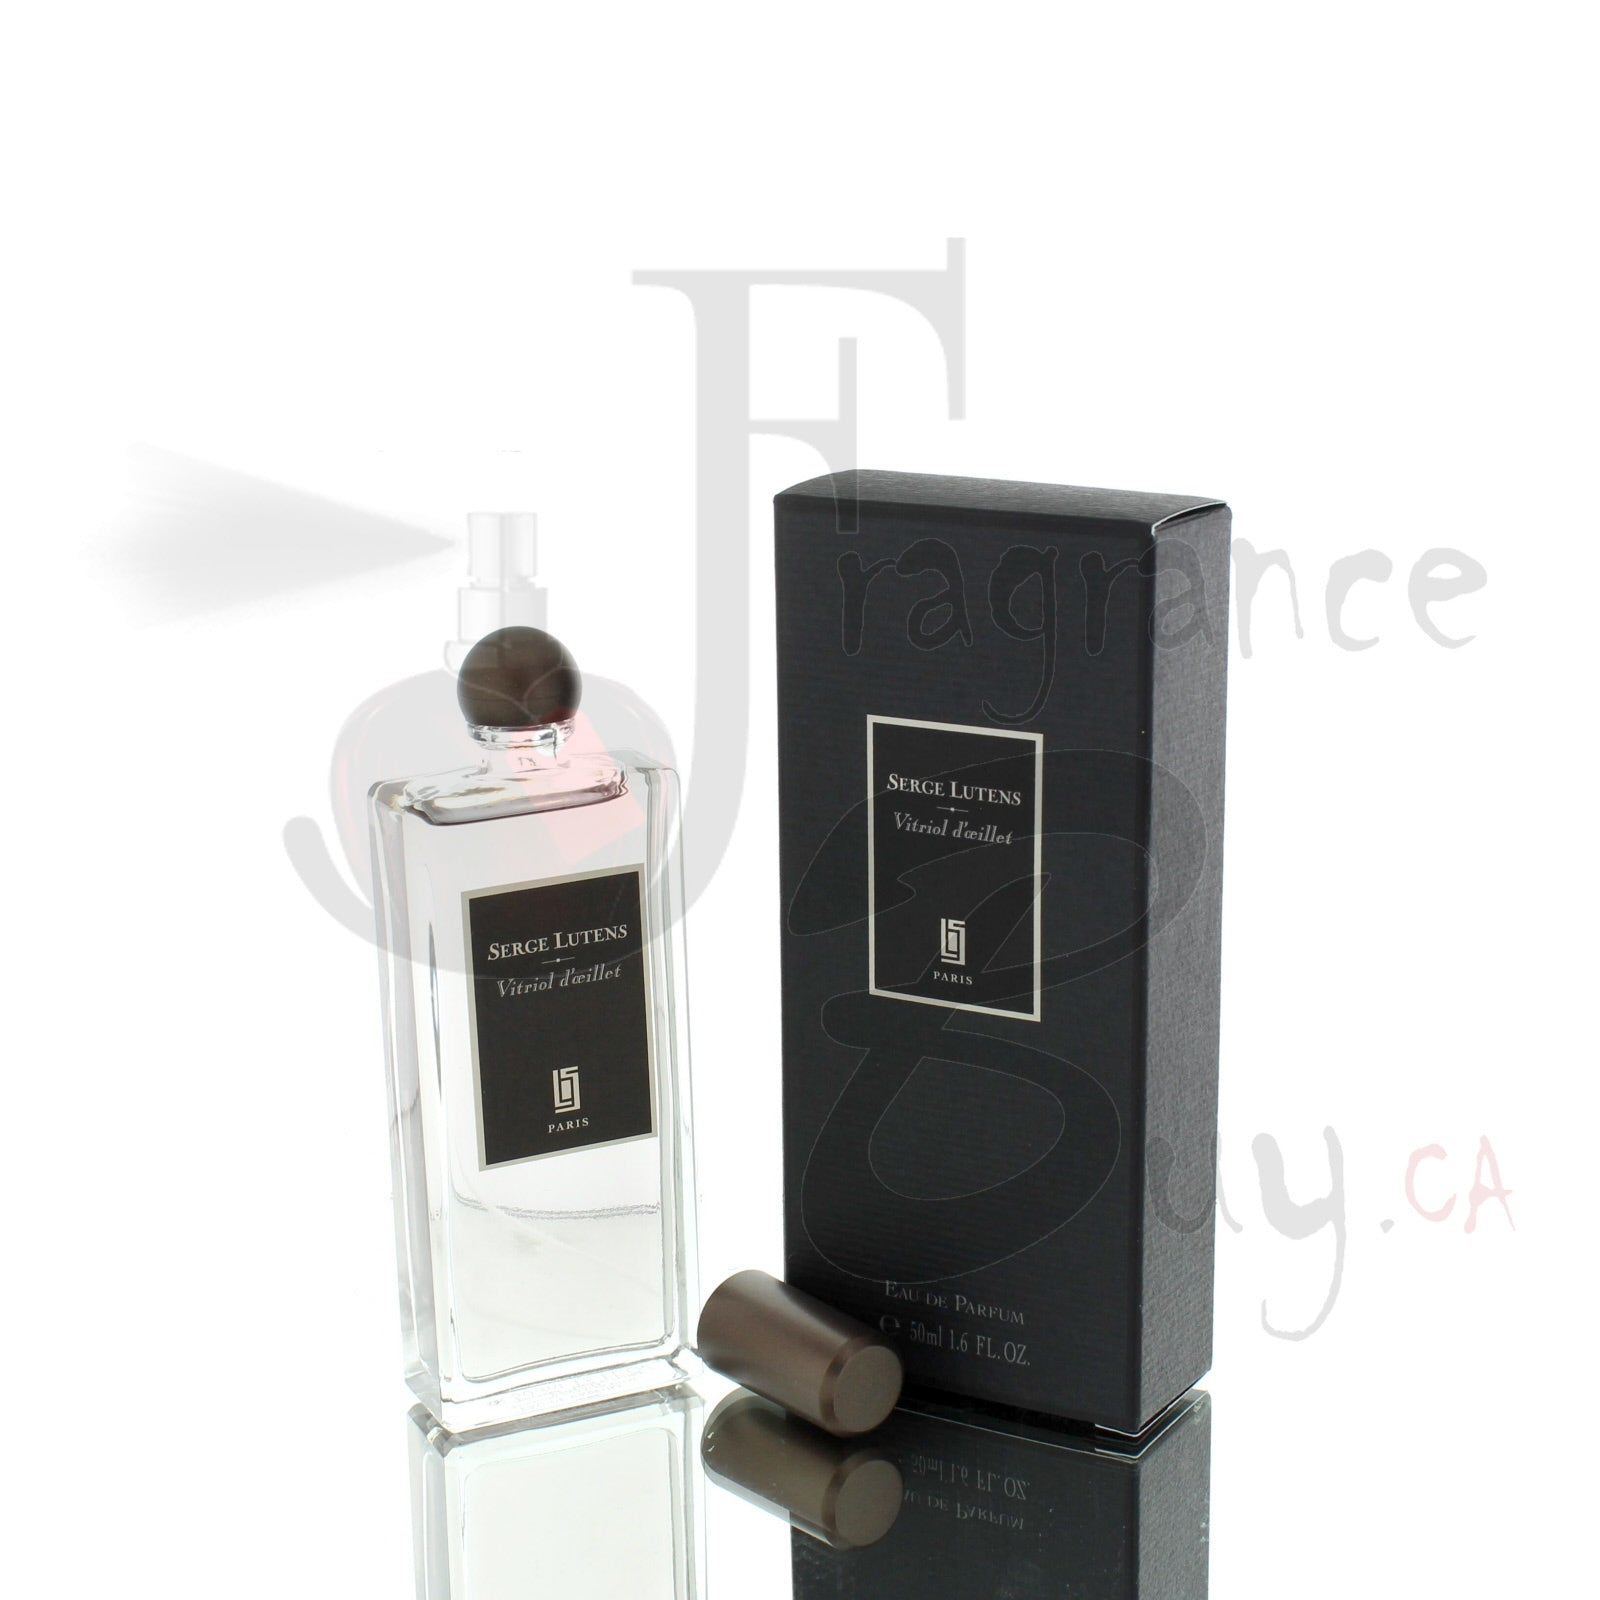 Serge Lutens Vitriol D'Oeillet For Man/Woman